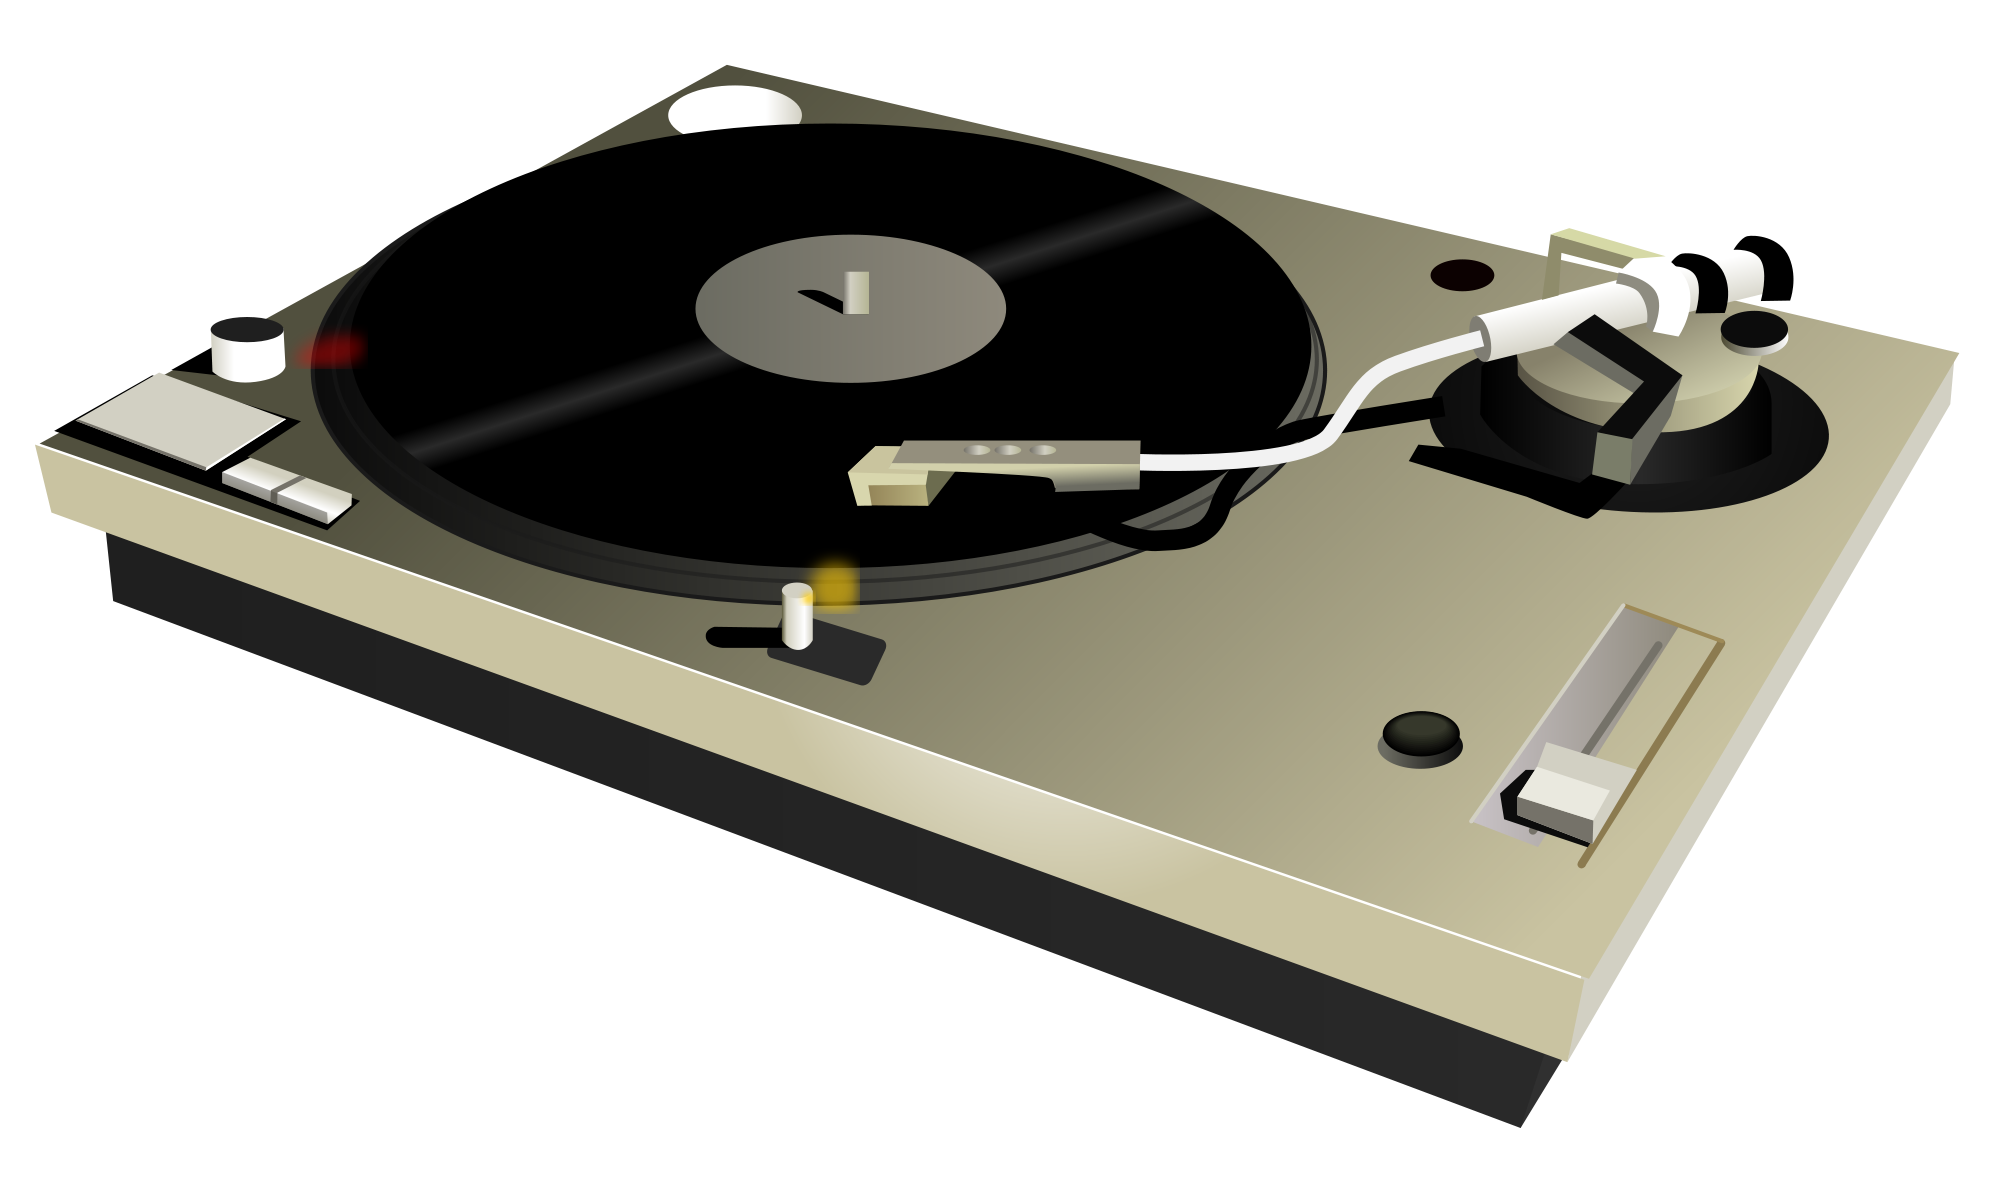 Free Download Turntable Png Images #28590.